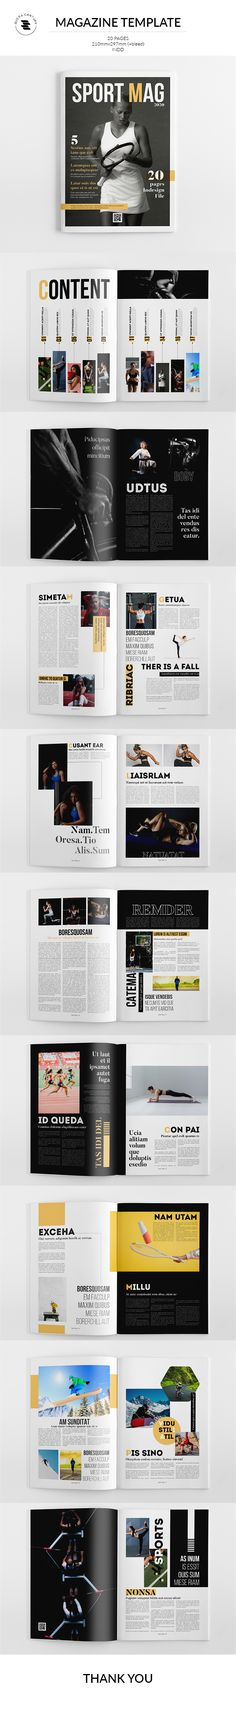 Buy Magazine Template by on GraphicRiver. The Magazine The Magazine. This layout is suitable for any project purpose. Magazine Template, Photo Displays, Branding, Portfolio Layout, Magazine Editorial, Brand Guidelines, Lettering, Templates, Sport